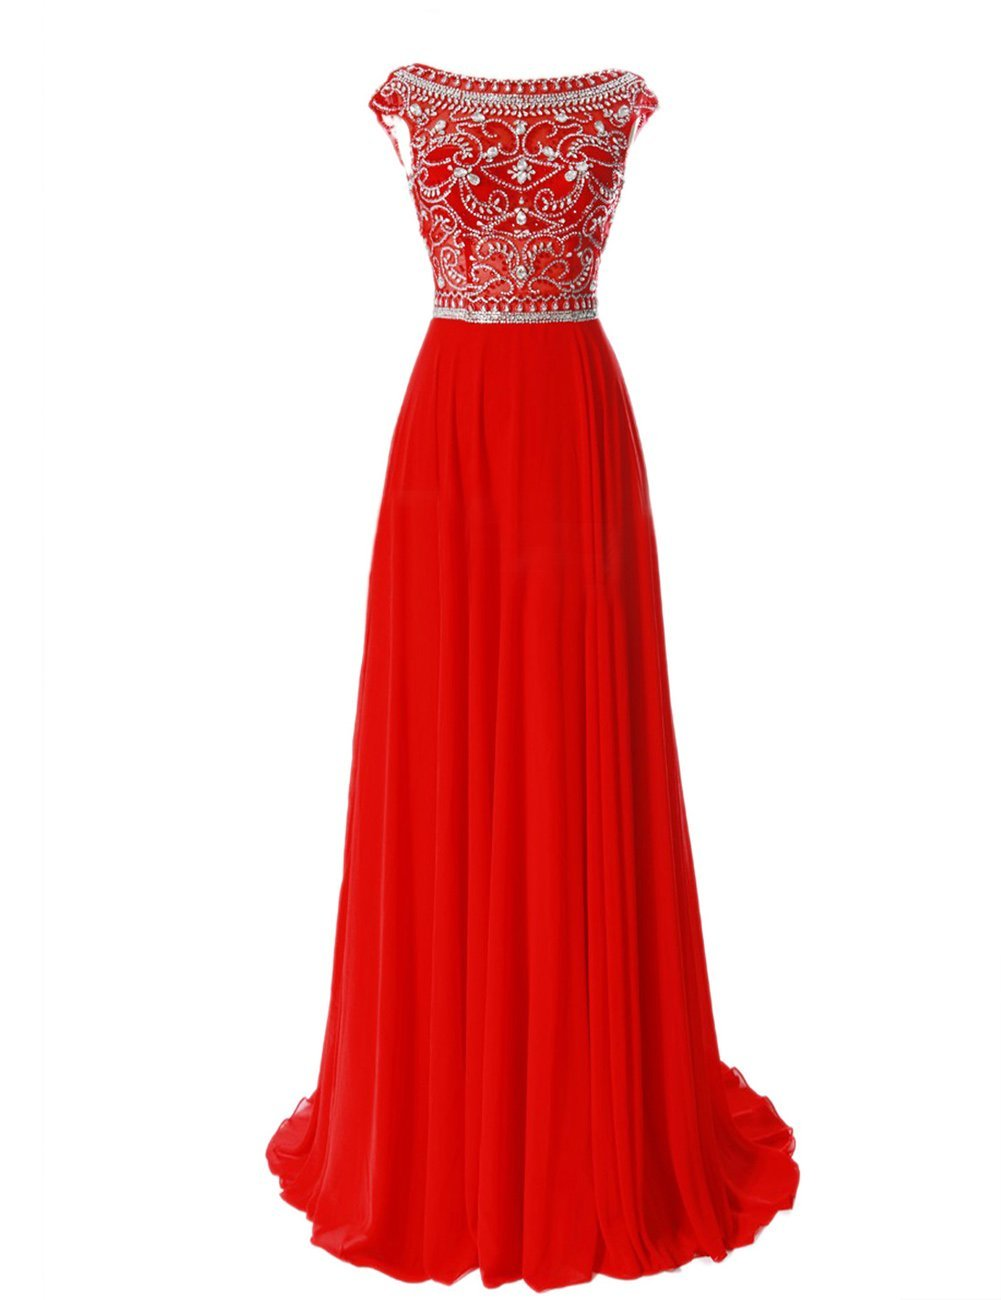 A-line prom dresses Elegant Floor Length Bridesmaid Cap Sleeve Prom Evening Dresses